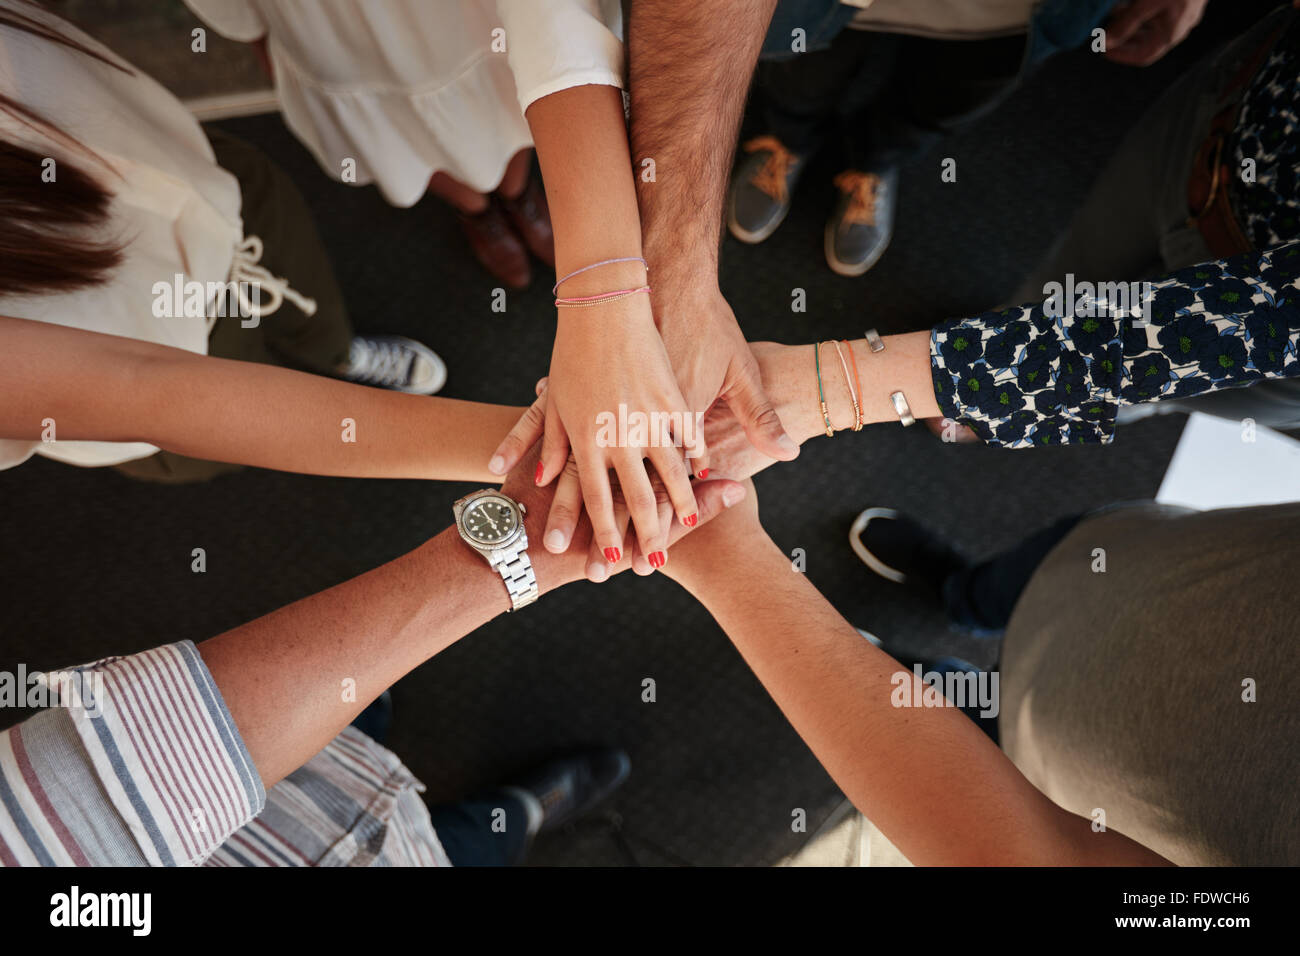 Top view of young creative professionals putting their hands together as a symbol of teamwork, cooperation and unity. - Stock Image